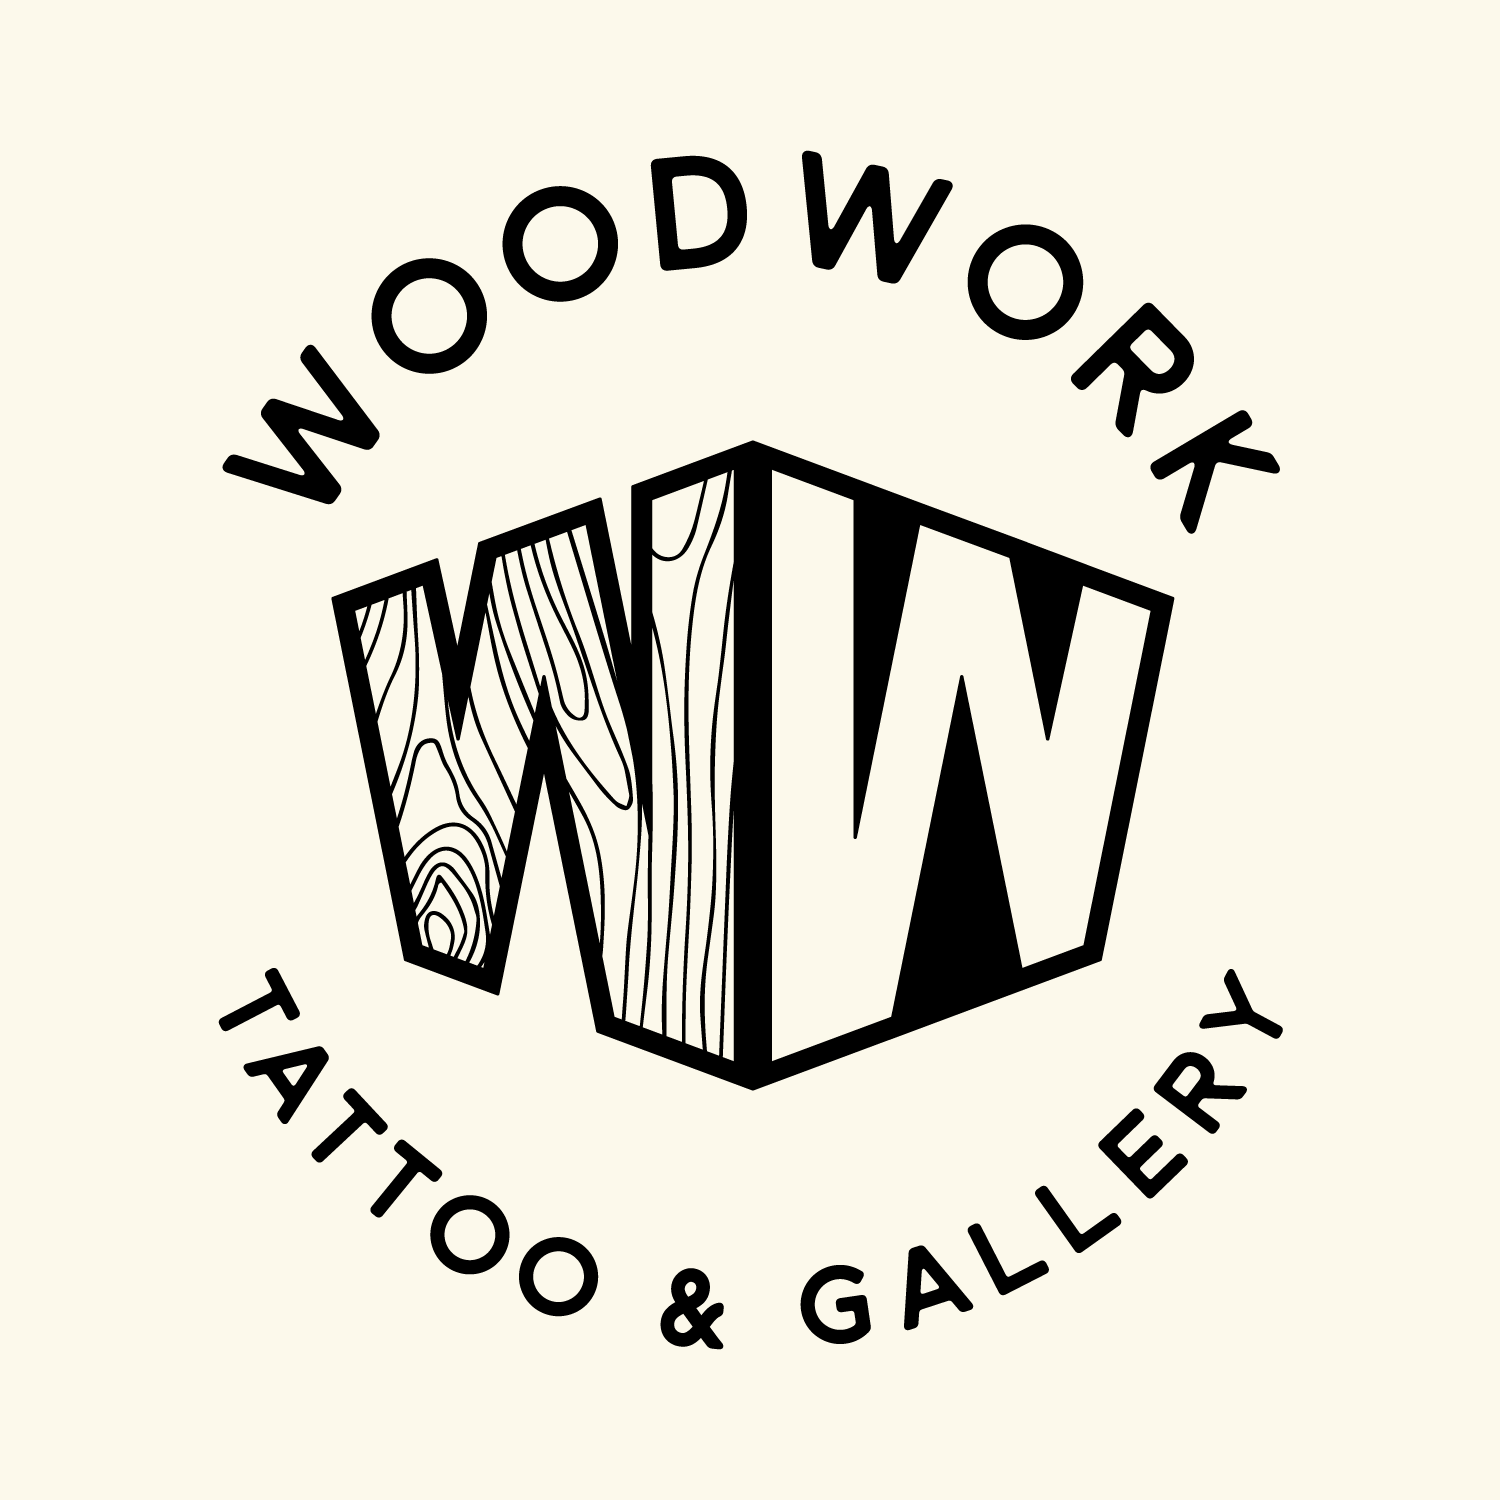 Business logo of Woodwork Tattoo & Gallery